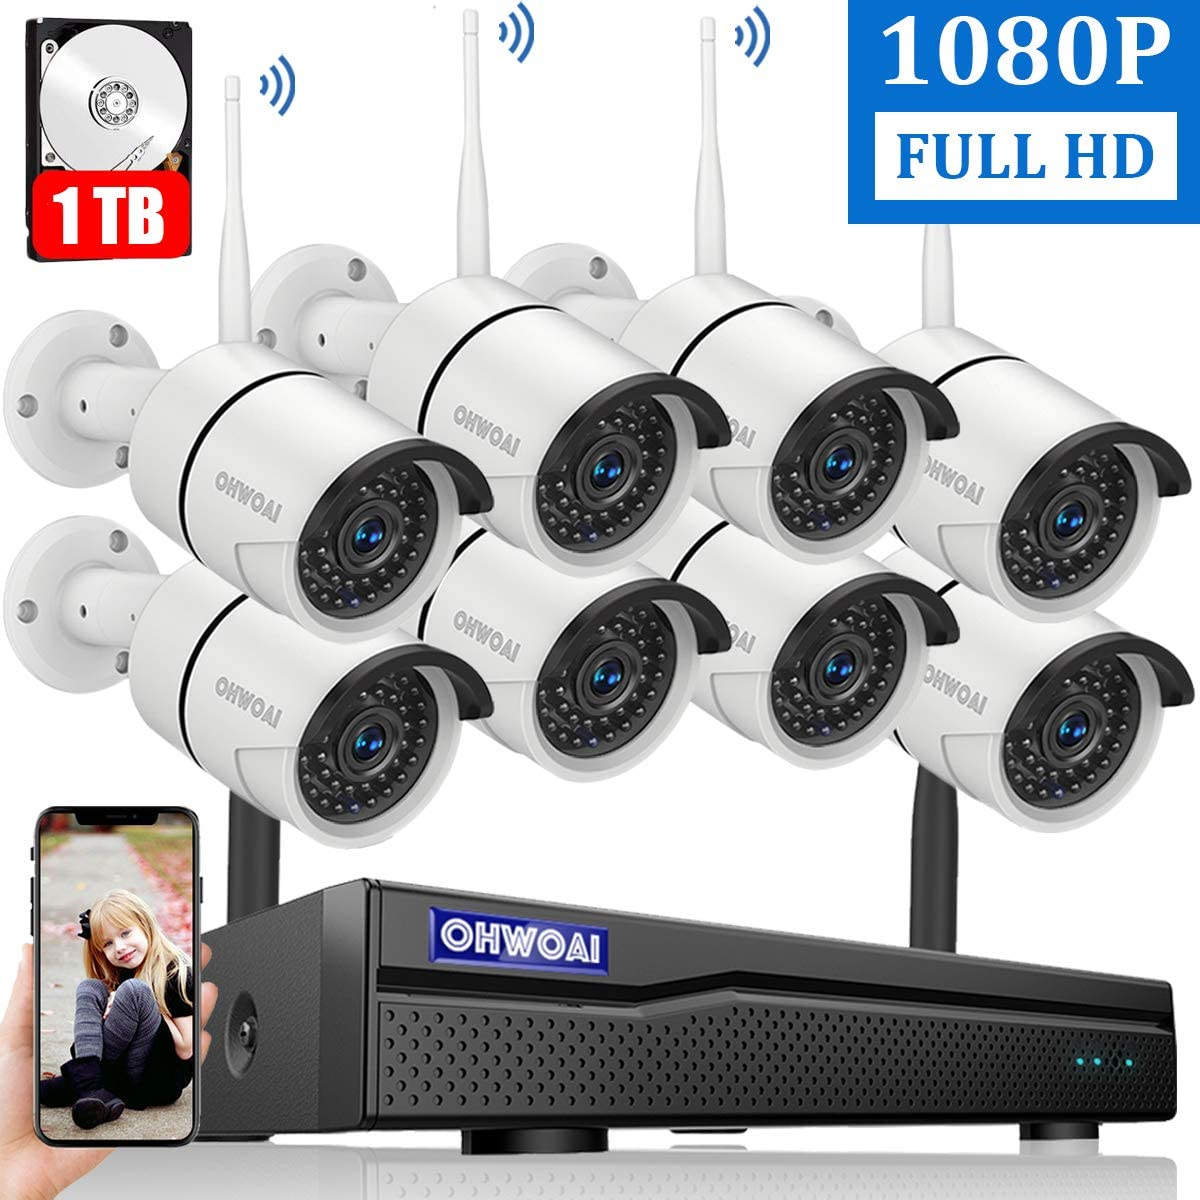 【2020 New】 Security Camera System Wireless, 8 Channel 1080P NVR with 1TB Hard Drive, 8PCS 1080P CCTV Cameras for Homes,OHWOAI HD Surveillance Video Security System,Outdoor Wireless IP Cameras 71vyTzthwdL